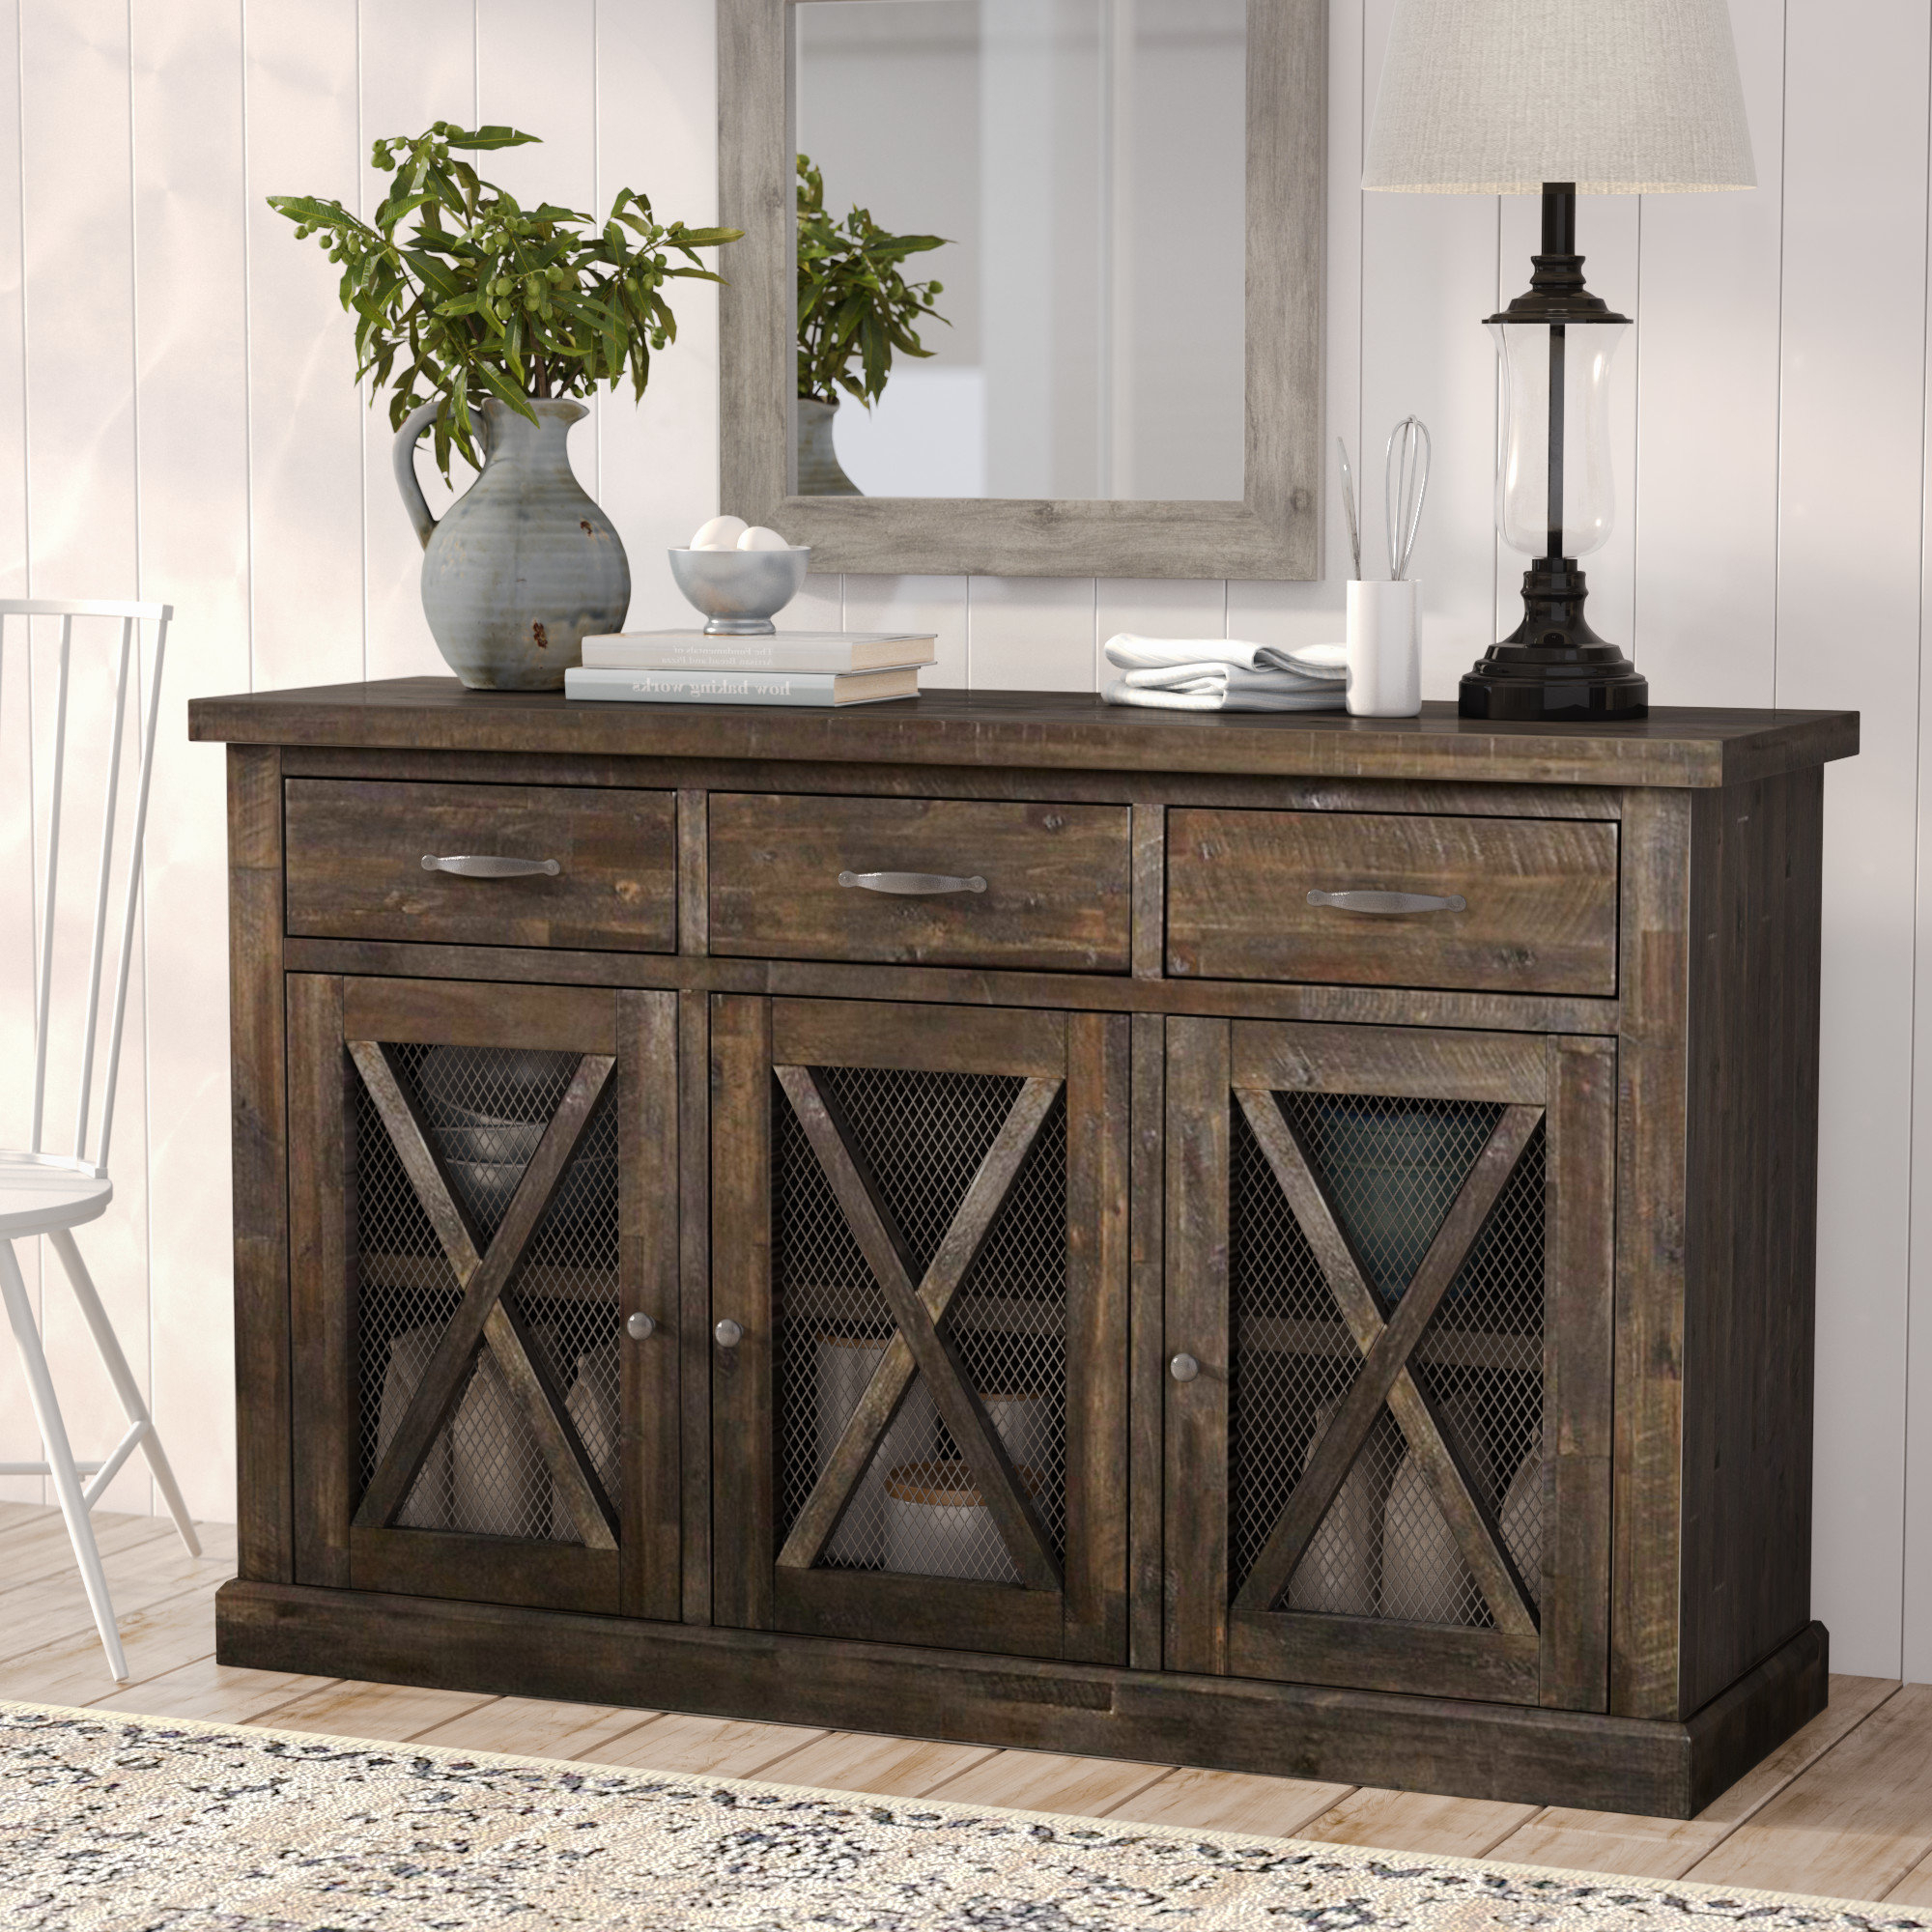 Sideboards & Buffet Tables You'll Love In 2019 | Wayfair For Rutherford Sideboards (View 2 of 20)